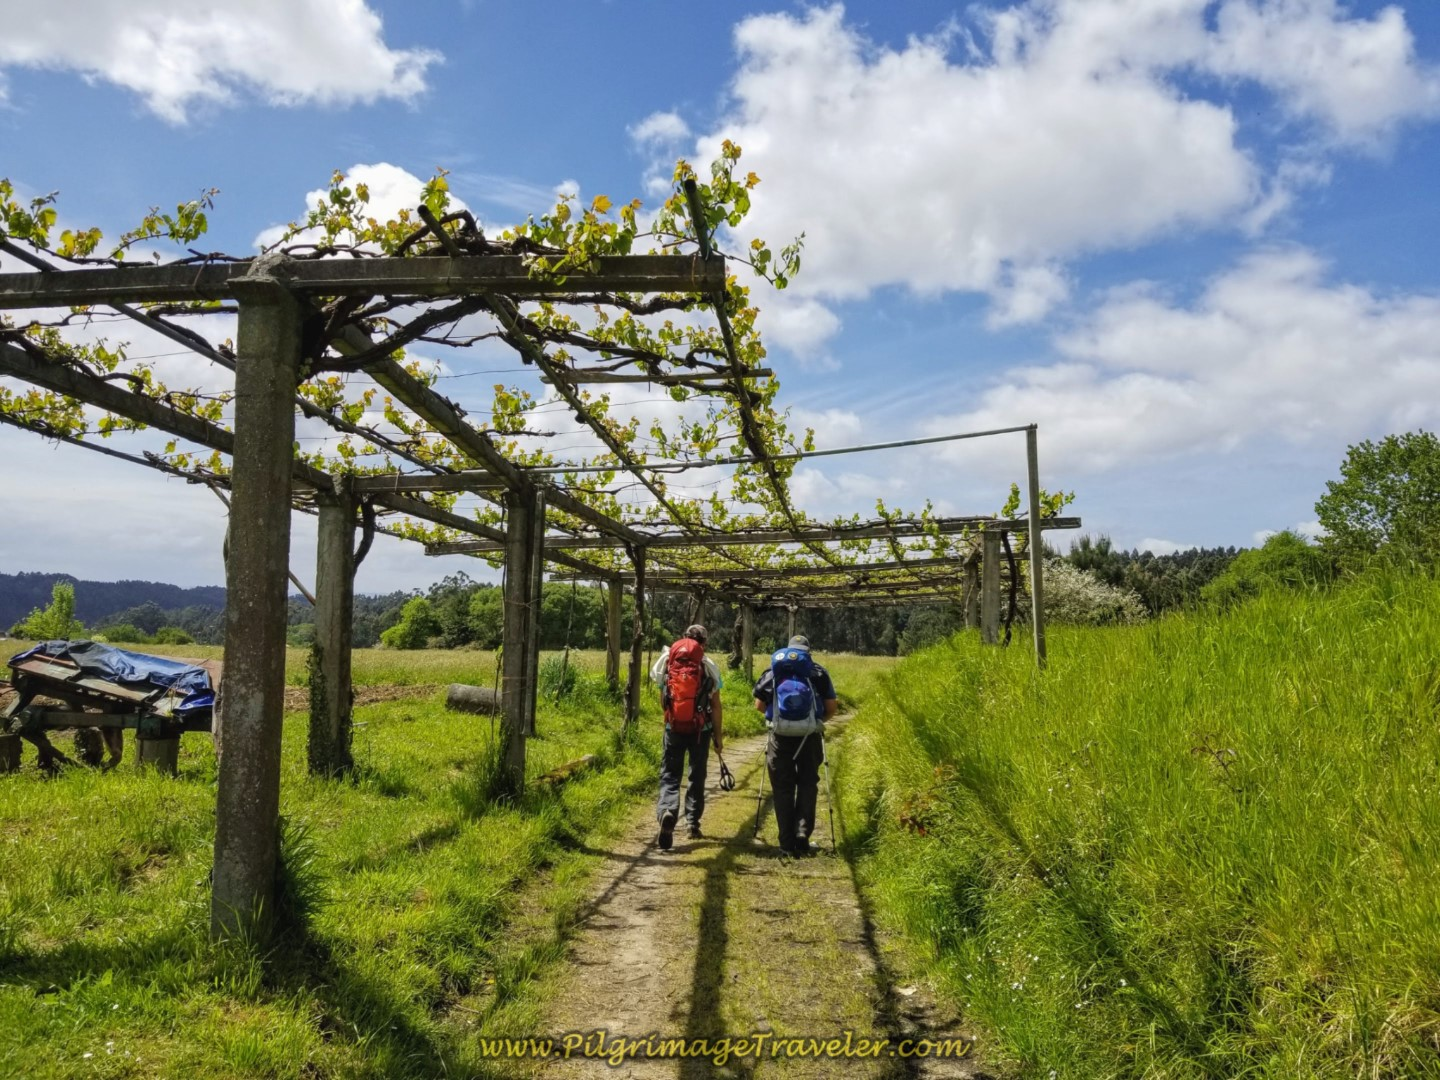 Rich and Steve Walk Through Grape Arbor on Farmer's Lane